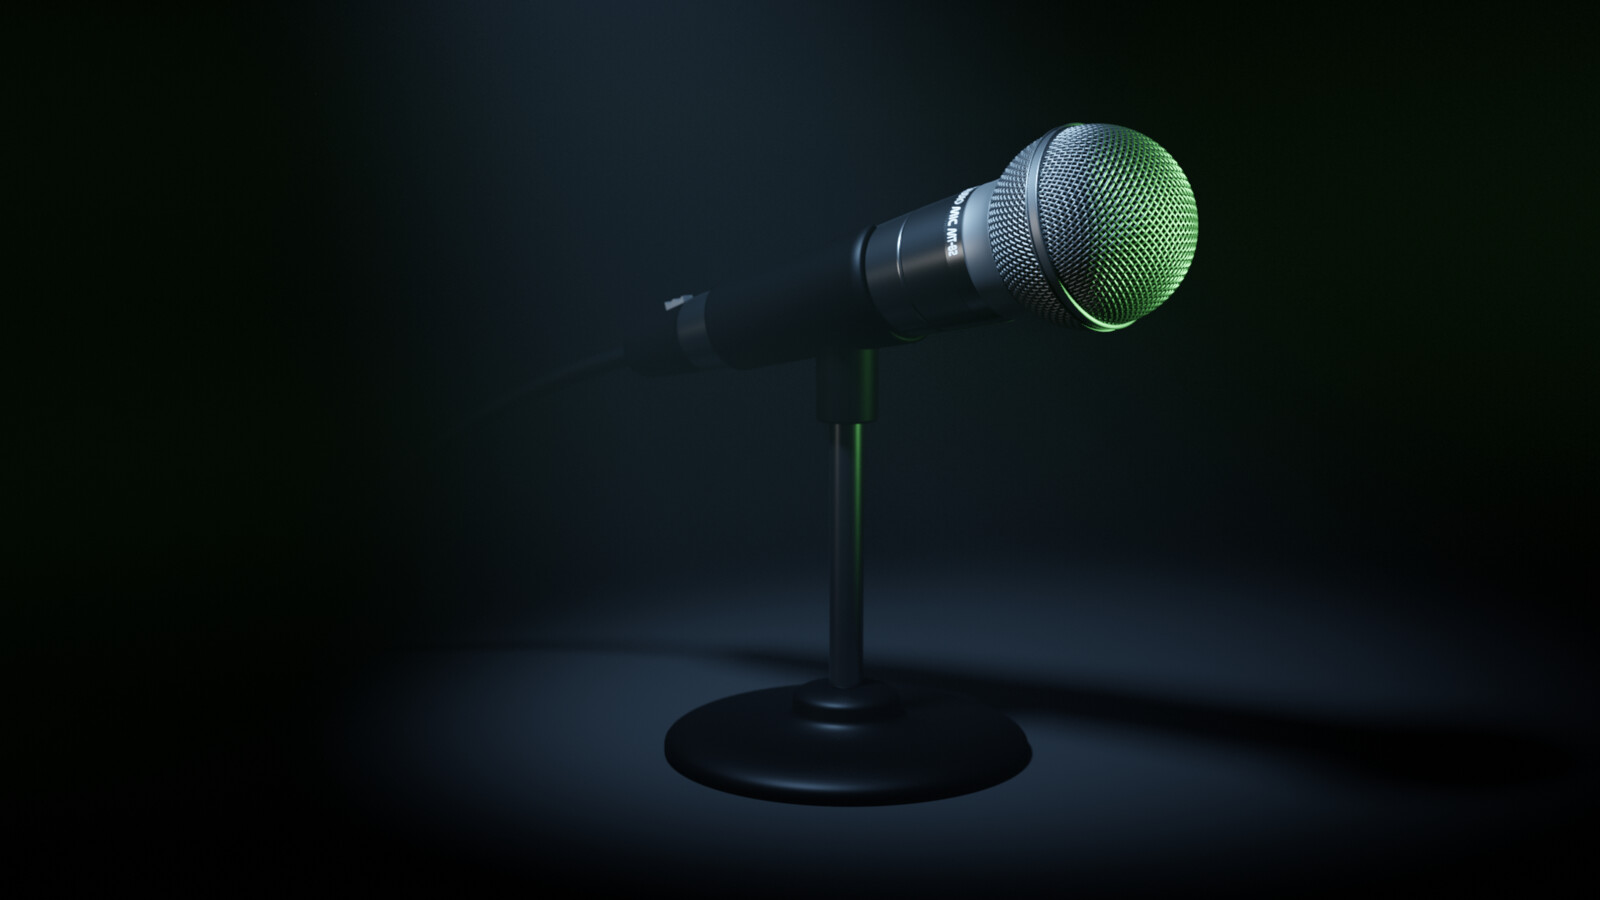 Microphone Light Study